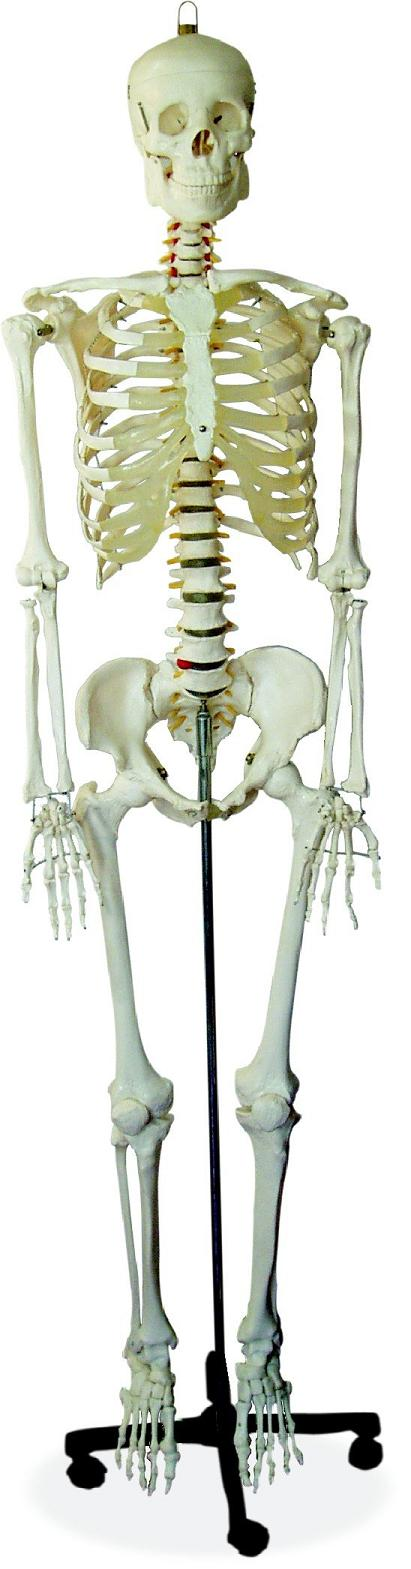 85cm Skeleton with Spinal Nerves (85cm Skelett mit Spinalnerven)